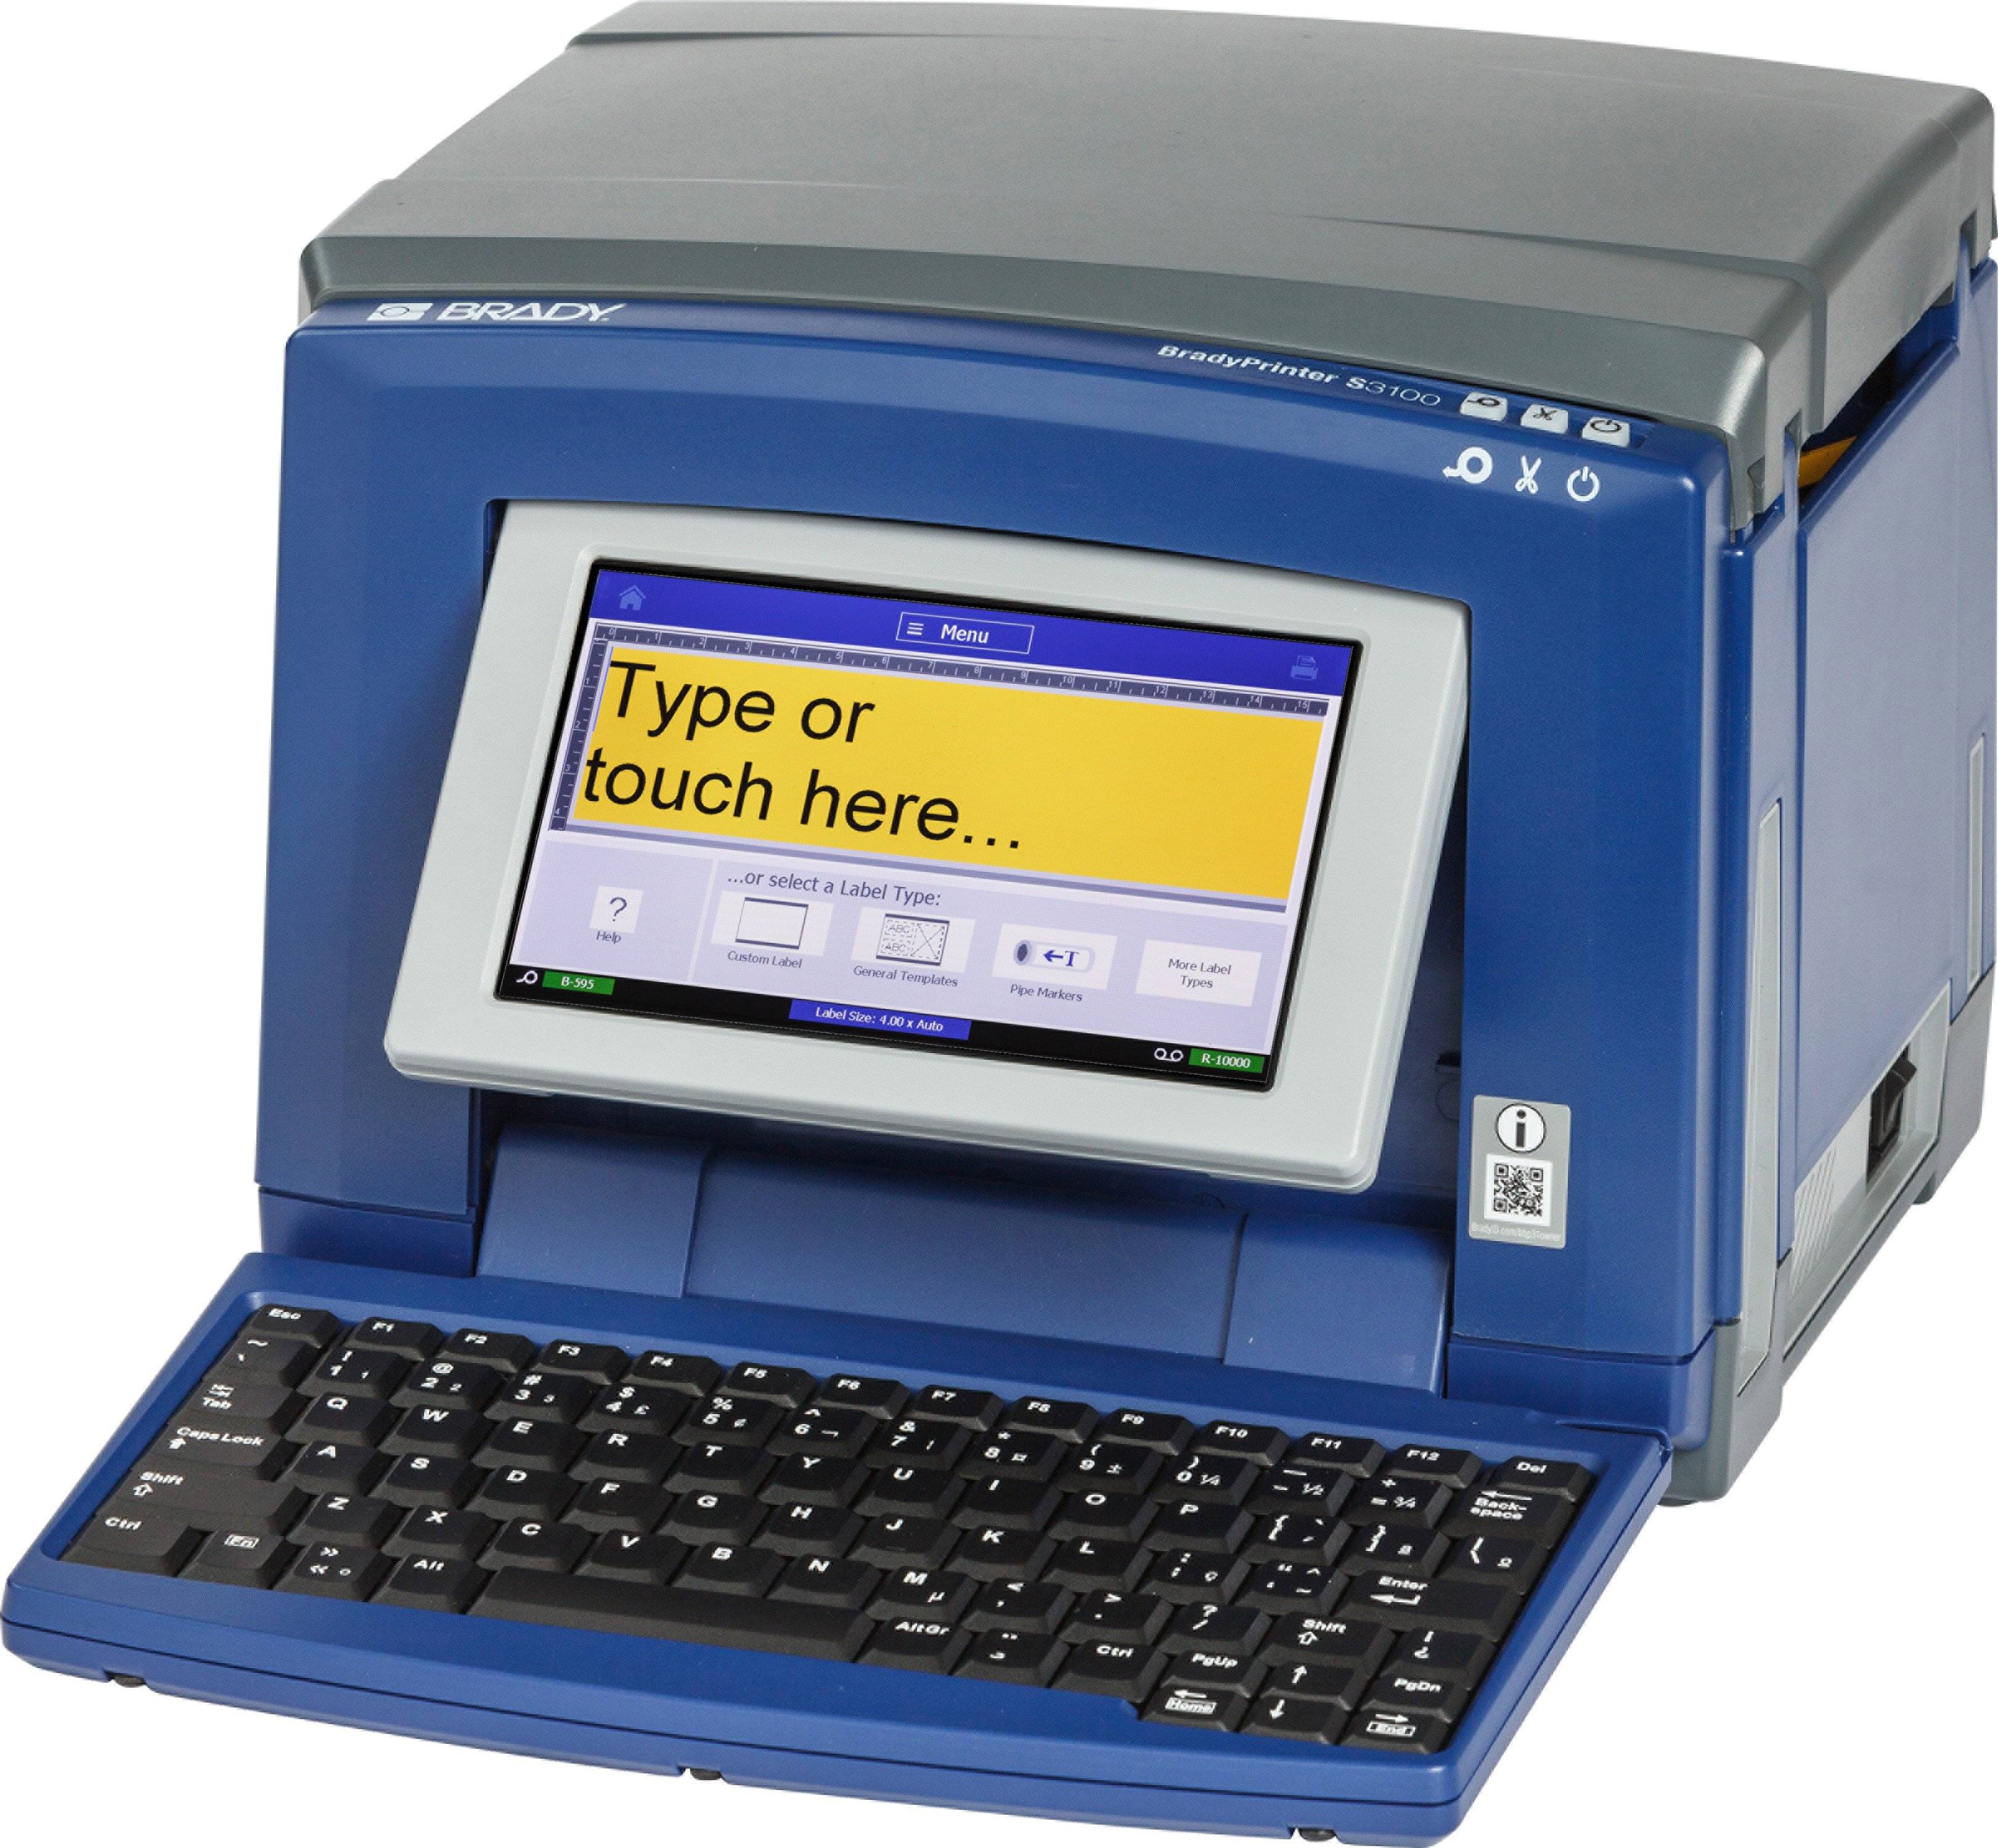 BradyPrinter S3100 Sign and Label Printer